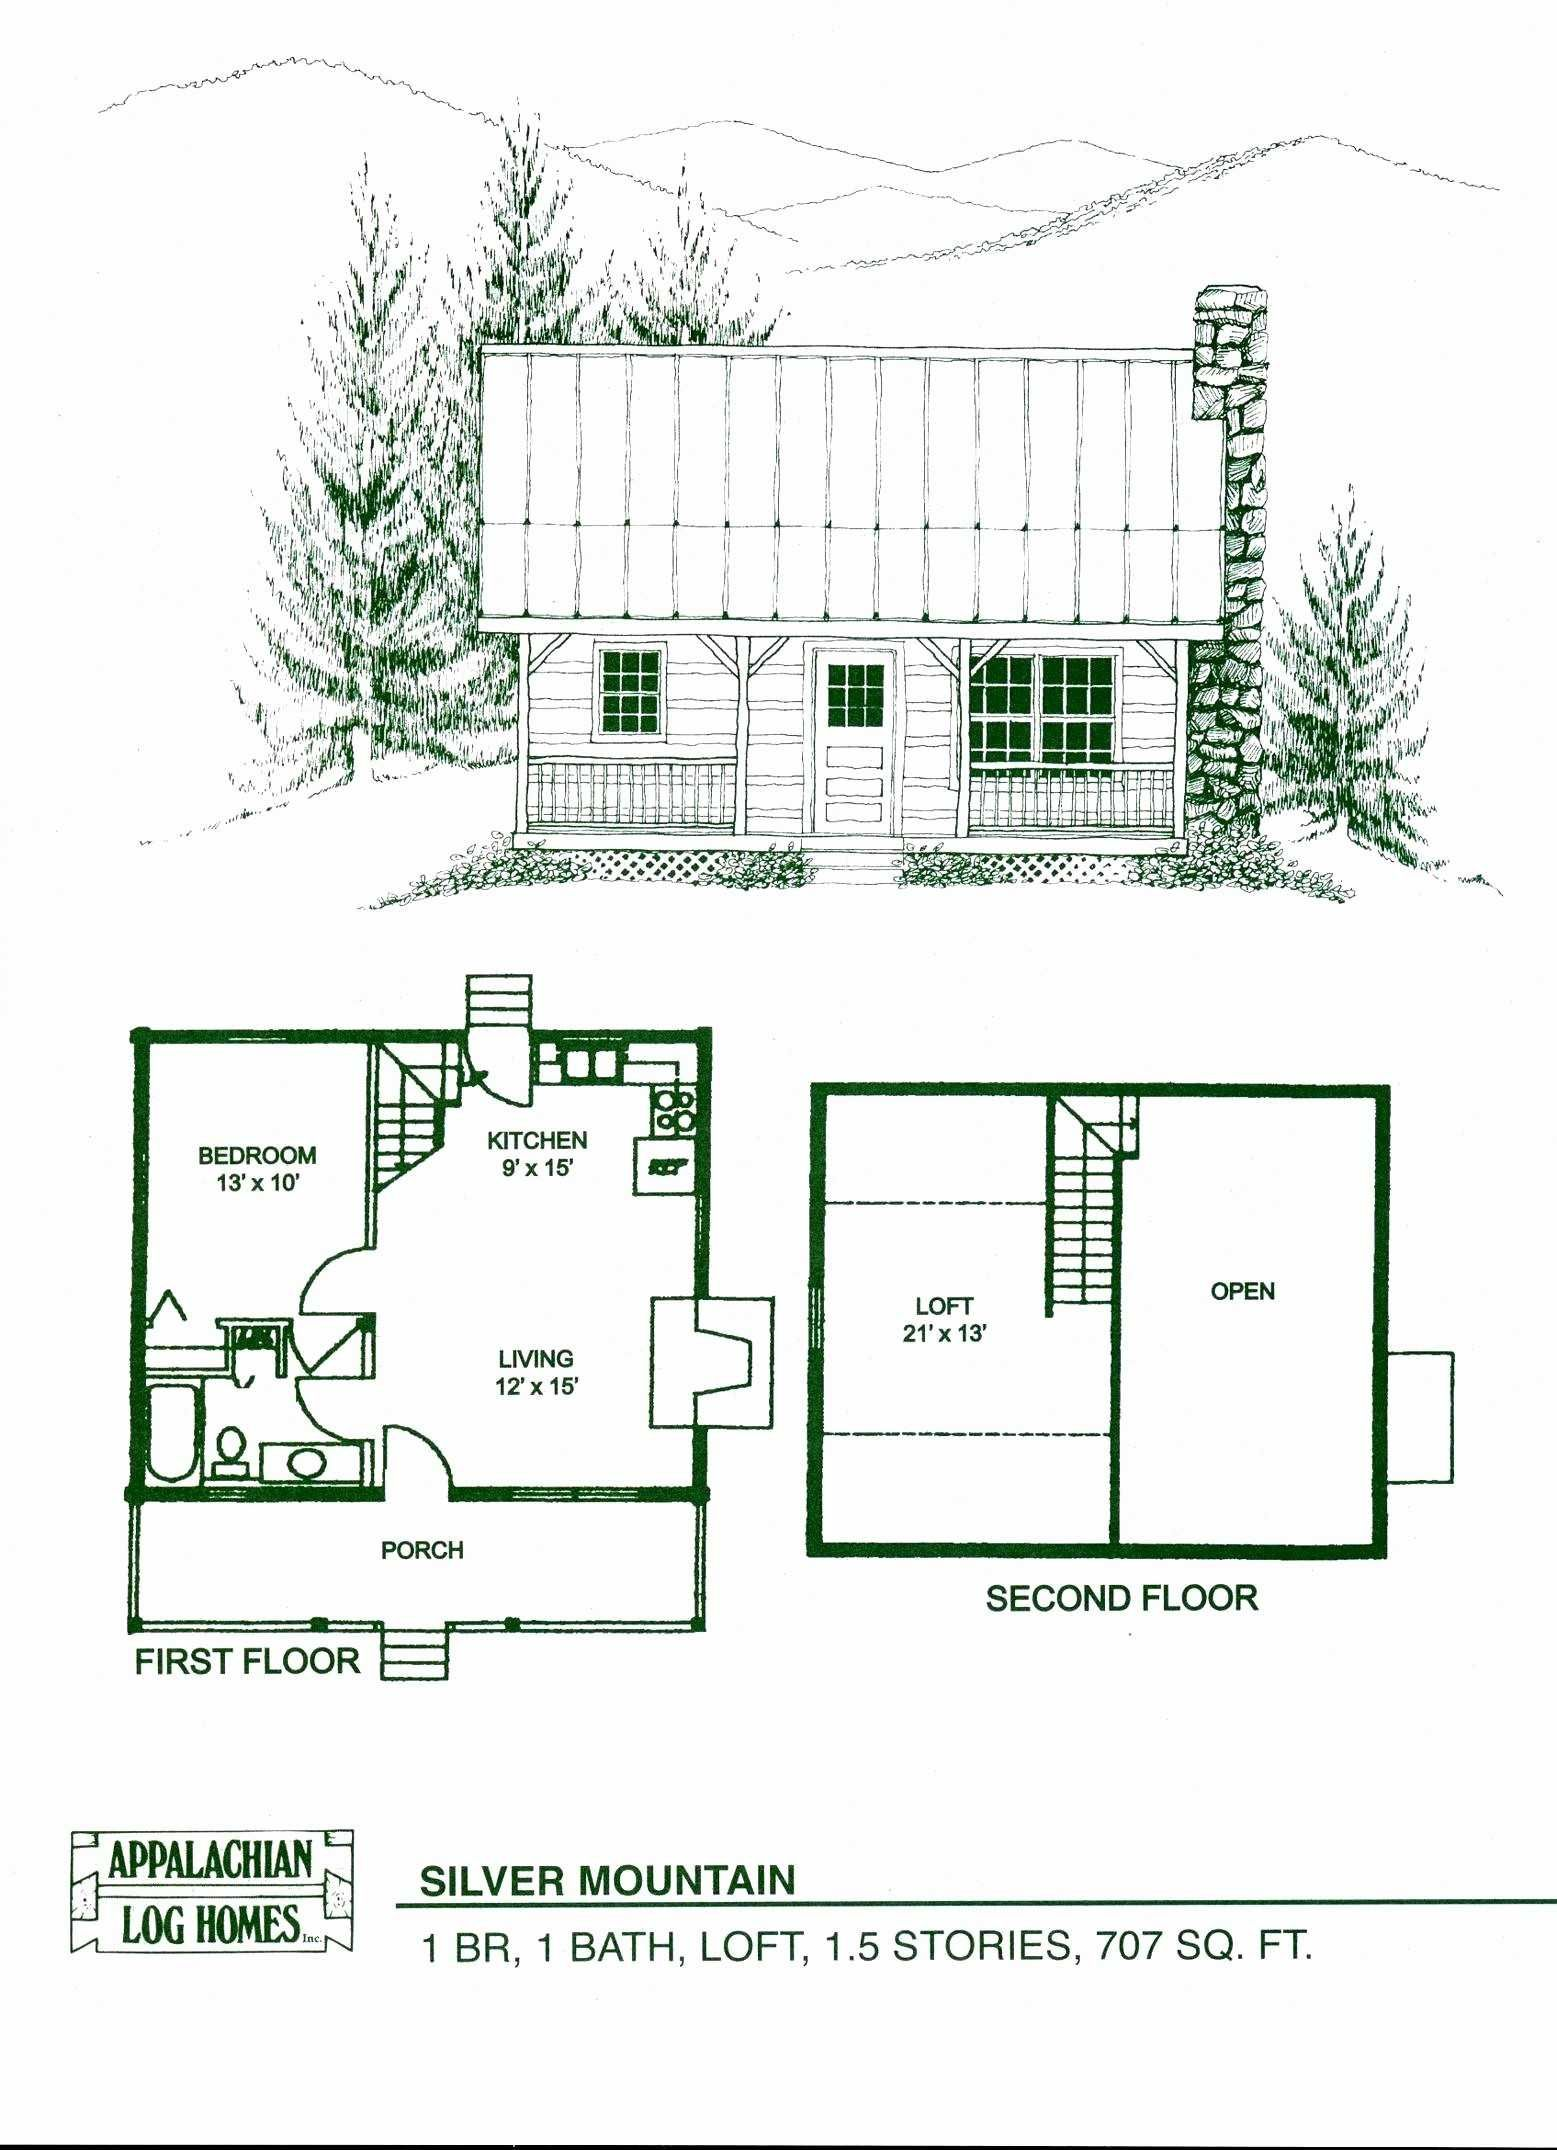 Stucco Modern Farmhouse Fresh Stucco Modern Farmhouse Small Stucco House Plans Beautiful 3 Bed F Small Cabin Plans House Plan With Loft Cottage House Plans